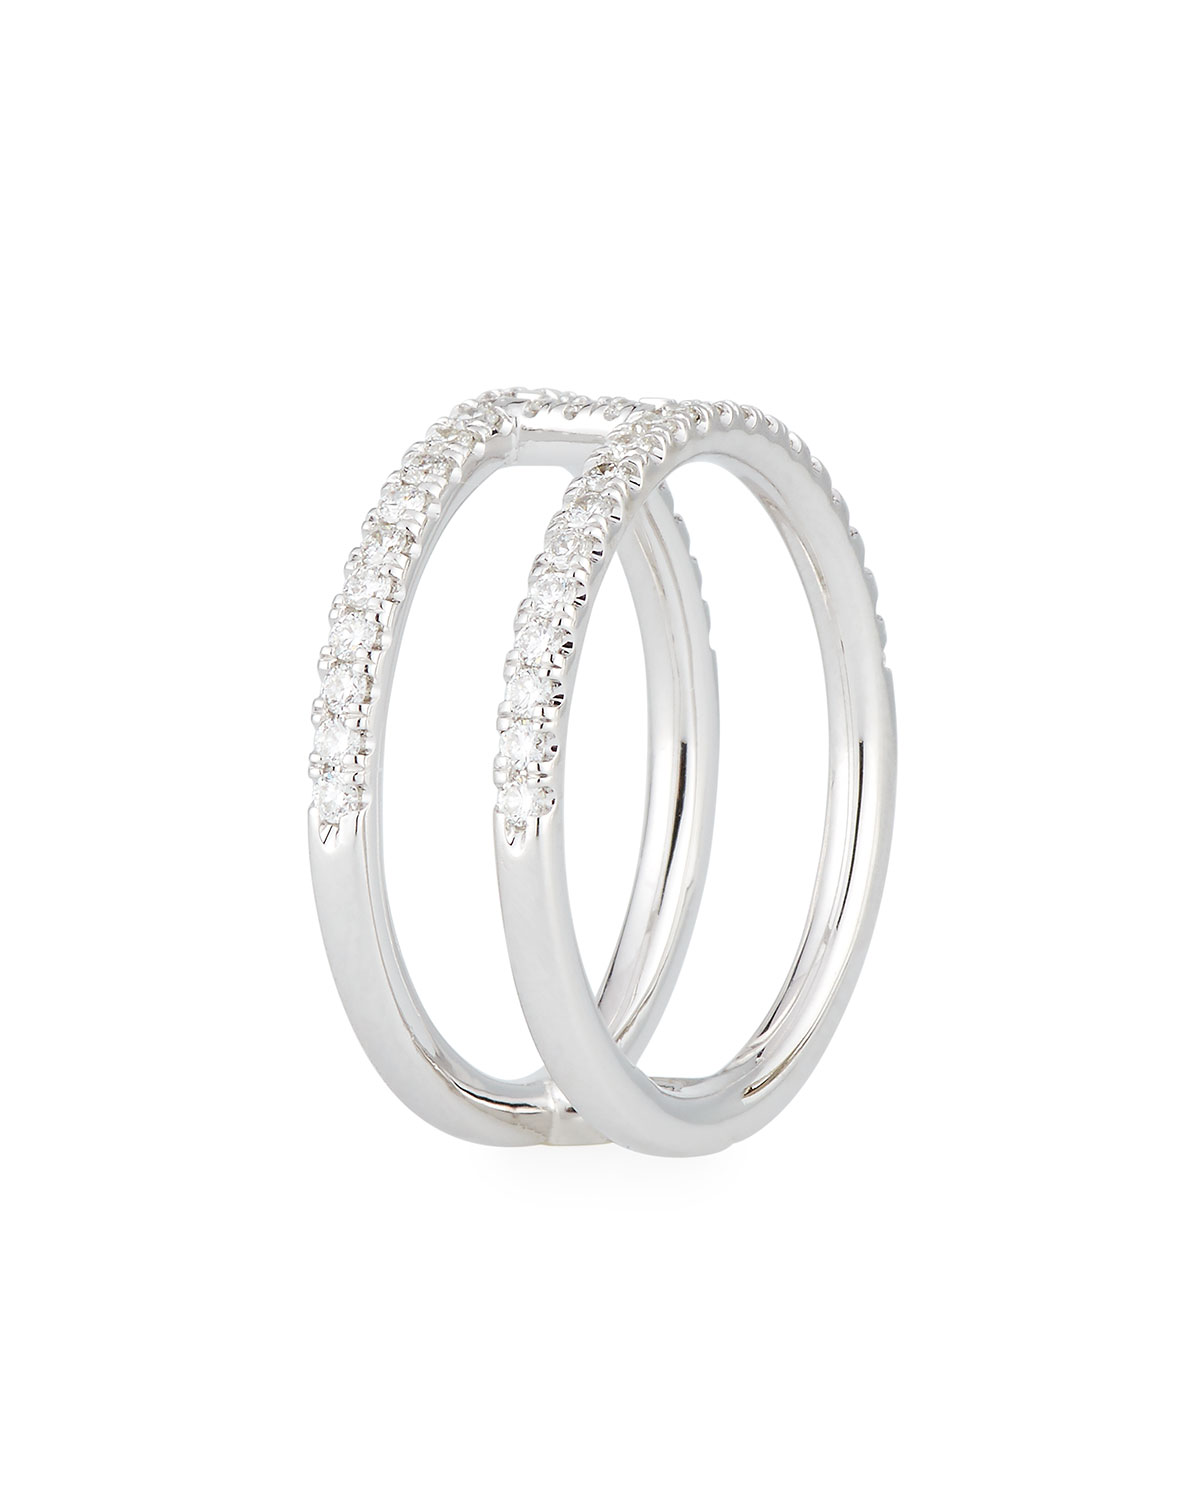 Roberto Coin Floating Diamond Two-Bar Ring in 18K White Gold, Size 6.5